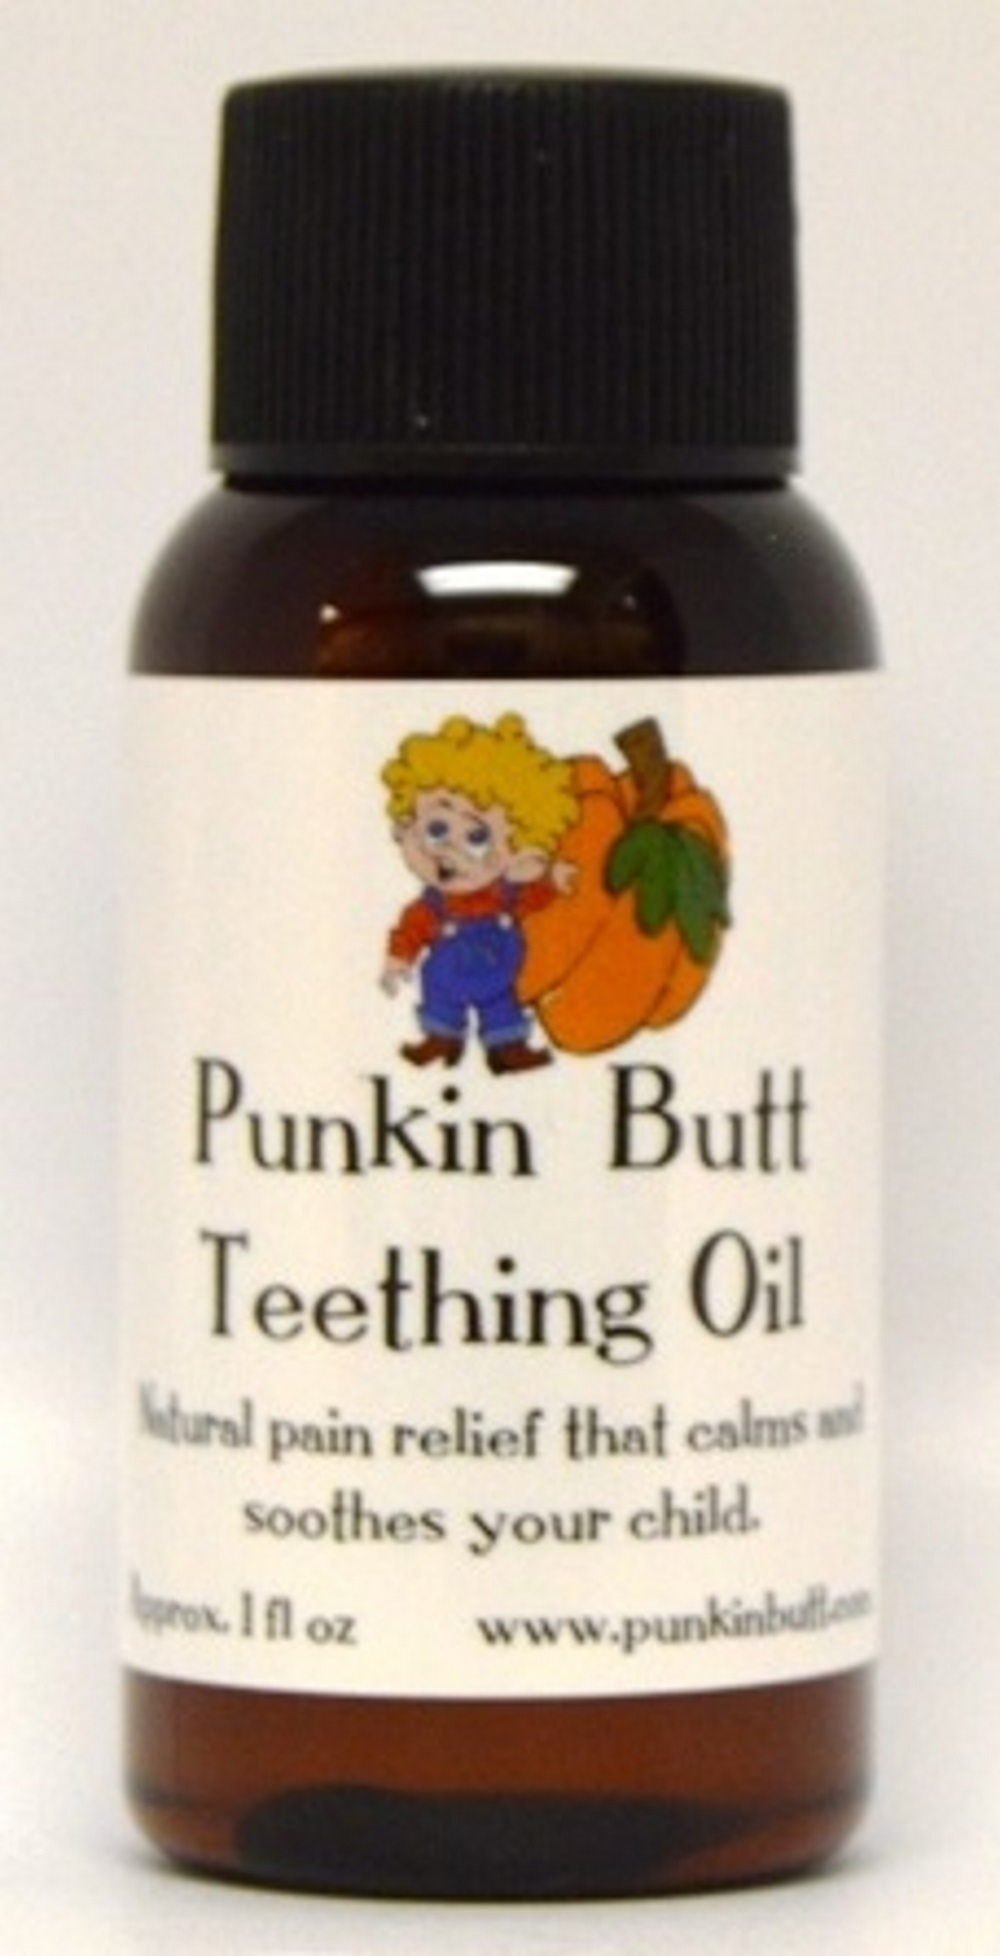 Punkin Butt Teething Oil - 1 Ounce